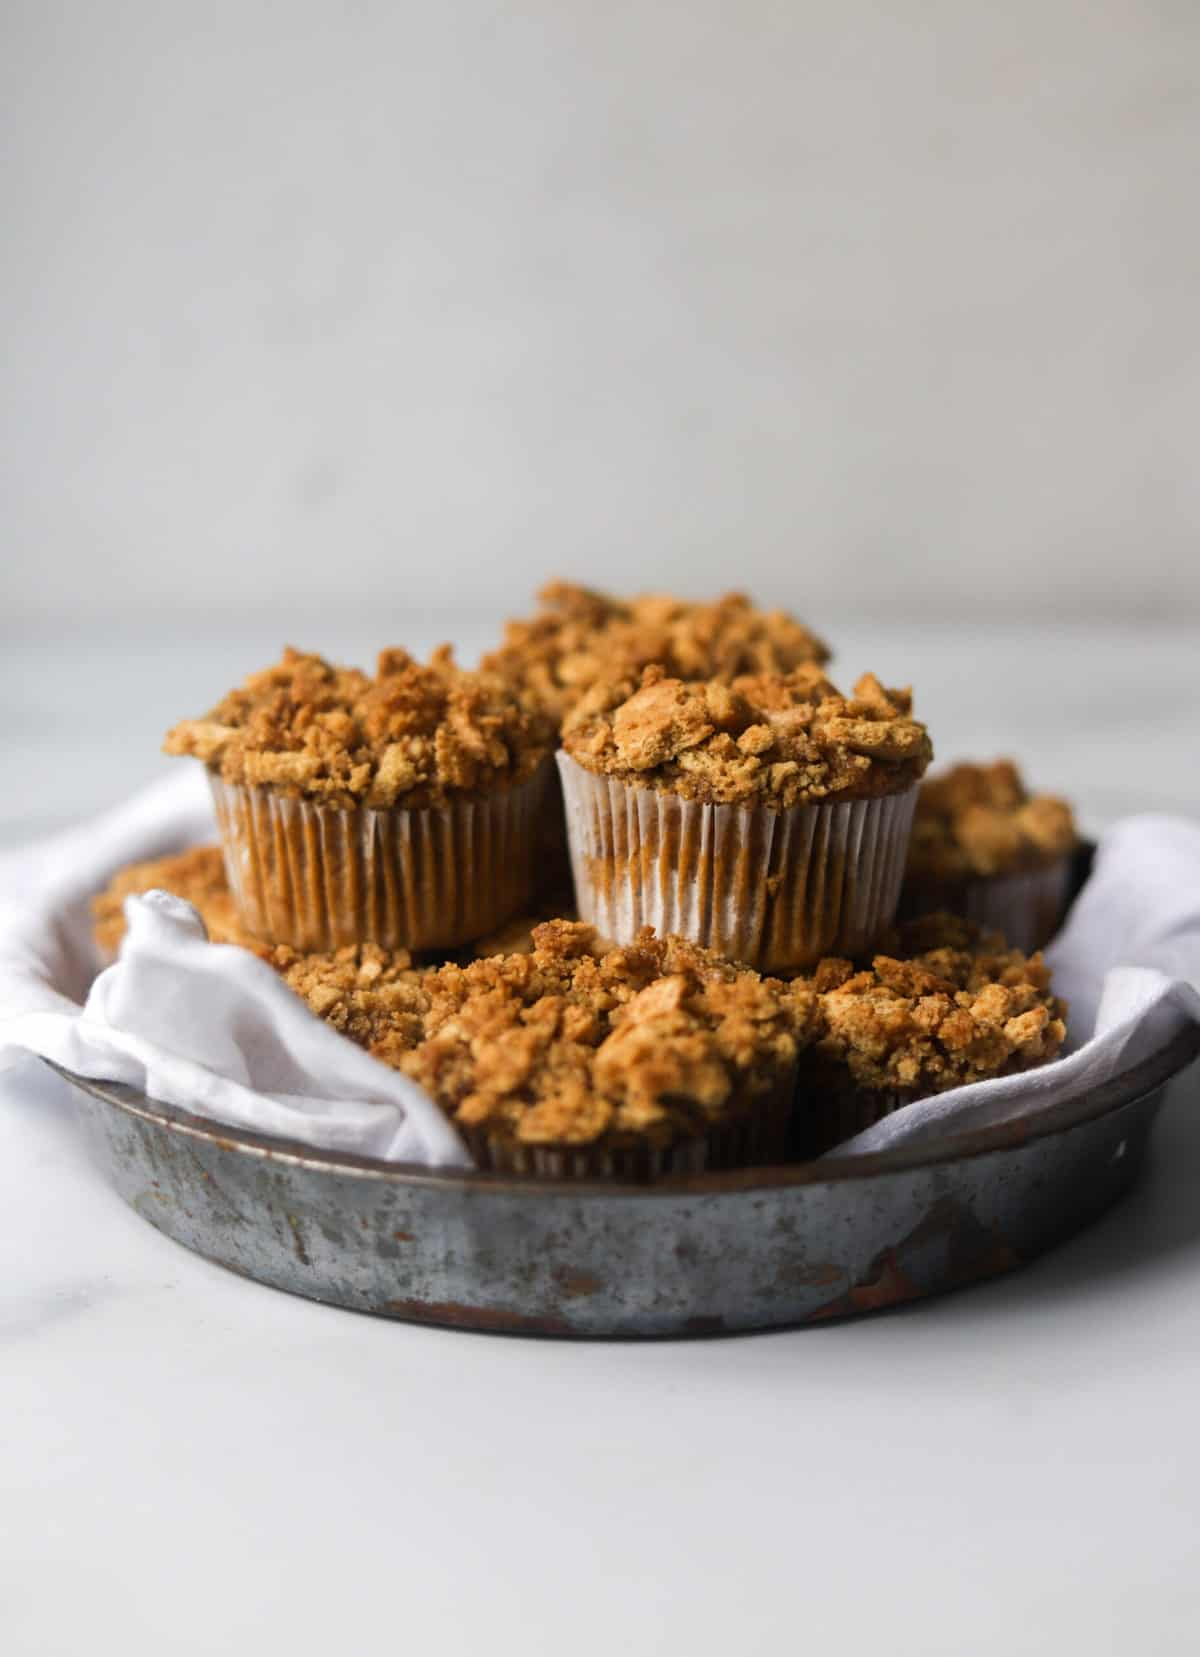 A side shot of a tin filled with sweet potato muffins.